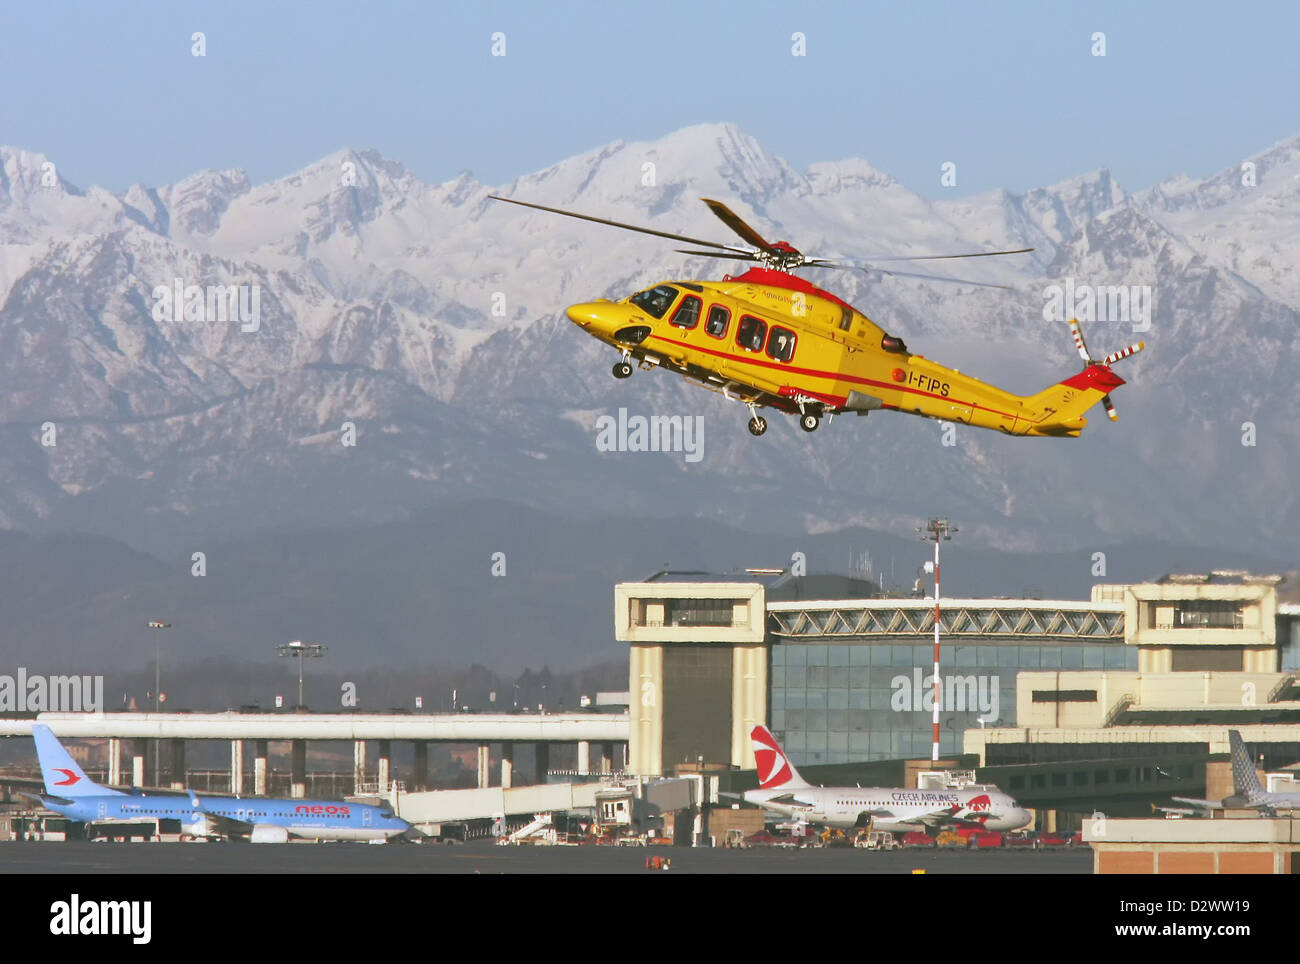 Untitled, Agusta-Westland AW-139 helicopter - Stock Image